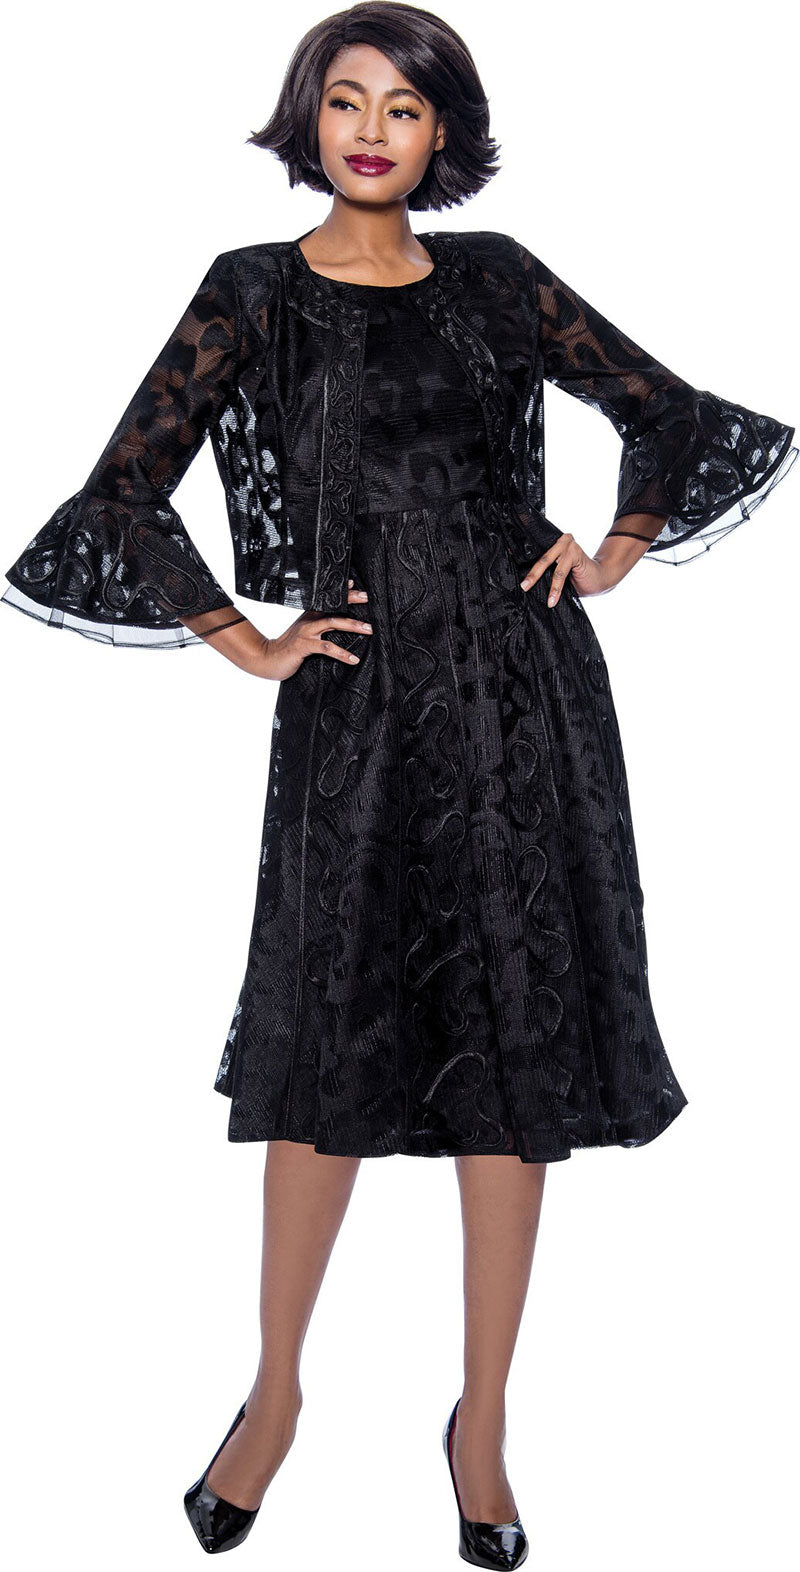 Terramina Dress 7826-Black - Church Suits For Less